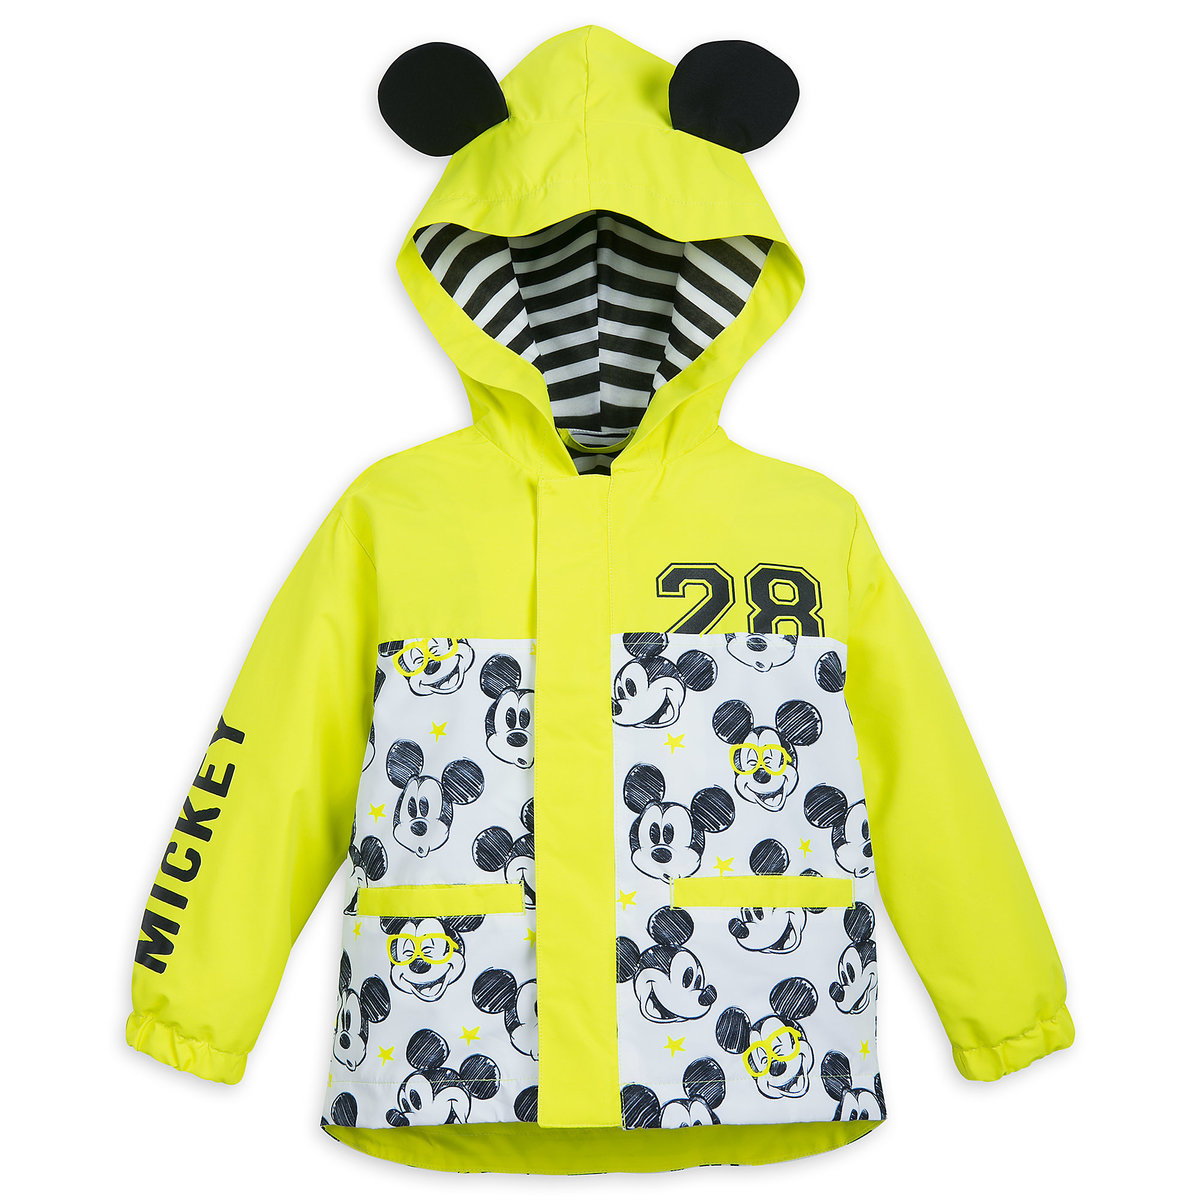 cc596ff6d Product Image of Mickey Mouse Packable Rain Jacket and Attached Carry Bag  for Kids # 1